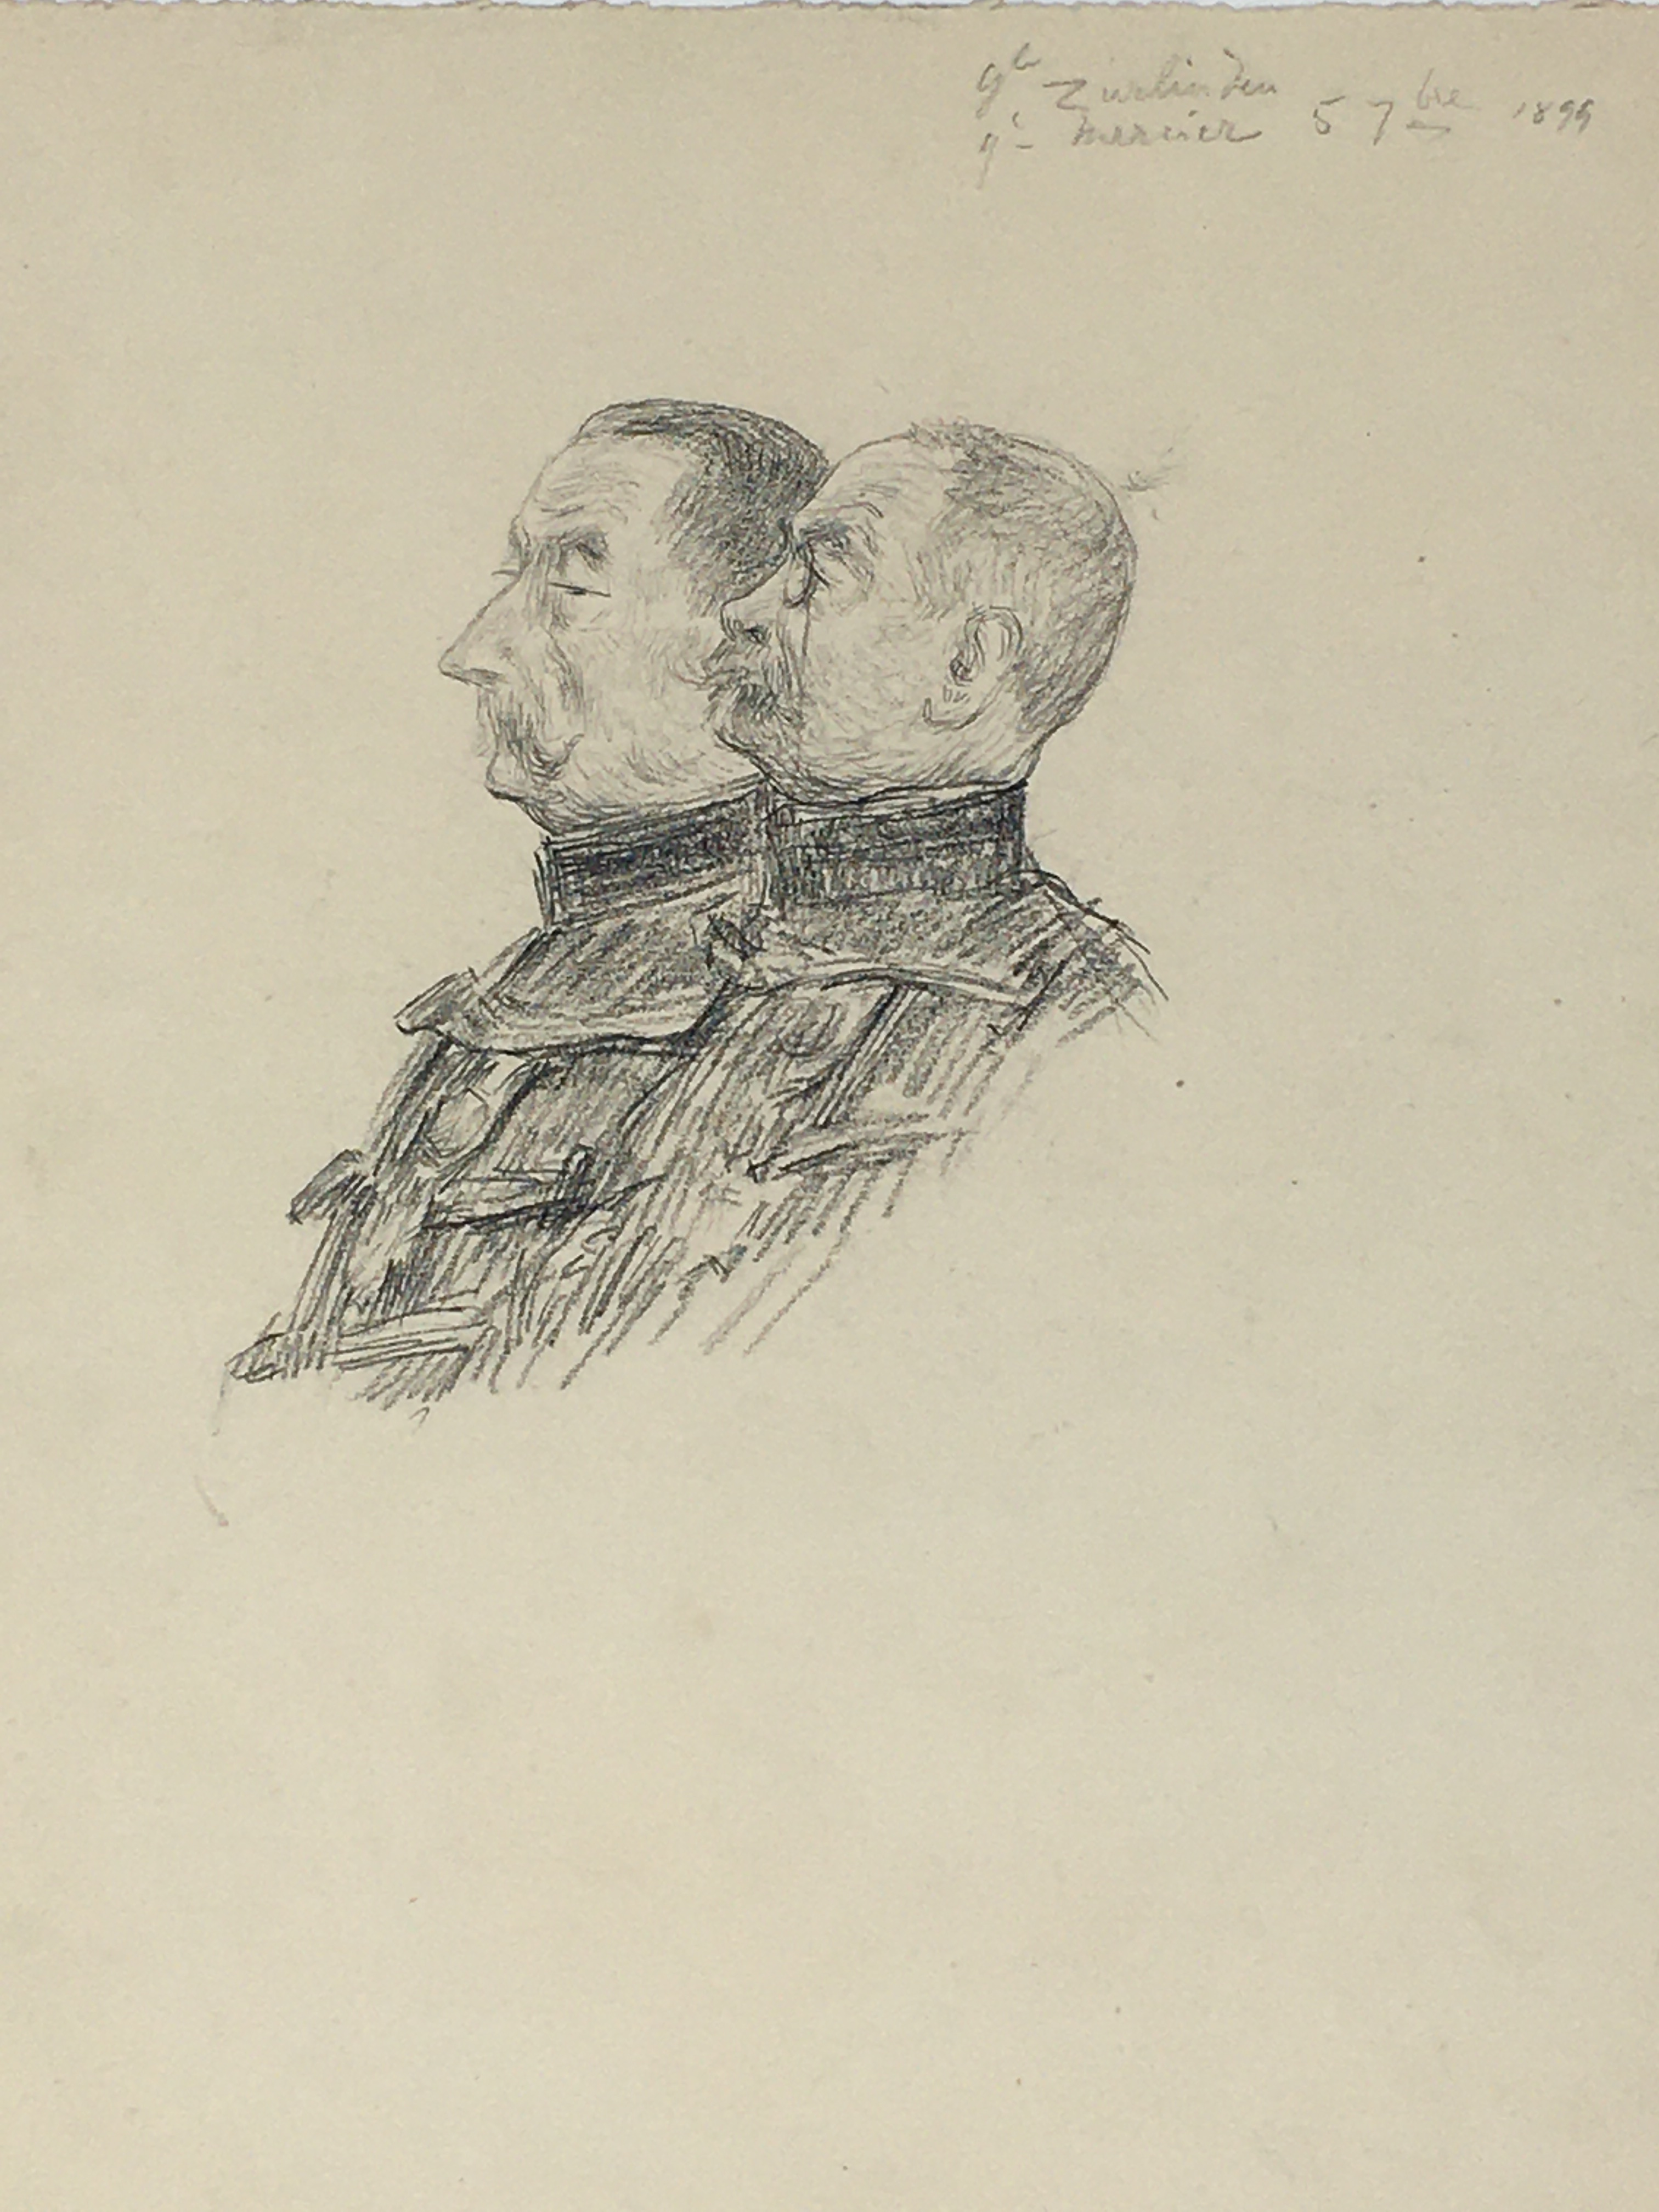 J'Accuse Newspaper, Emile Zola Quote, Signed Dreyfus Portrait, Rare Trial Drawings & Schwartzkoppen - Image 67 of 74